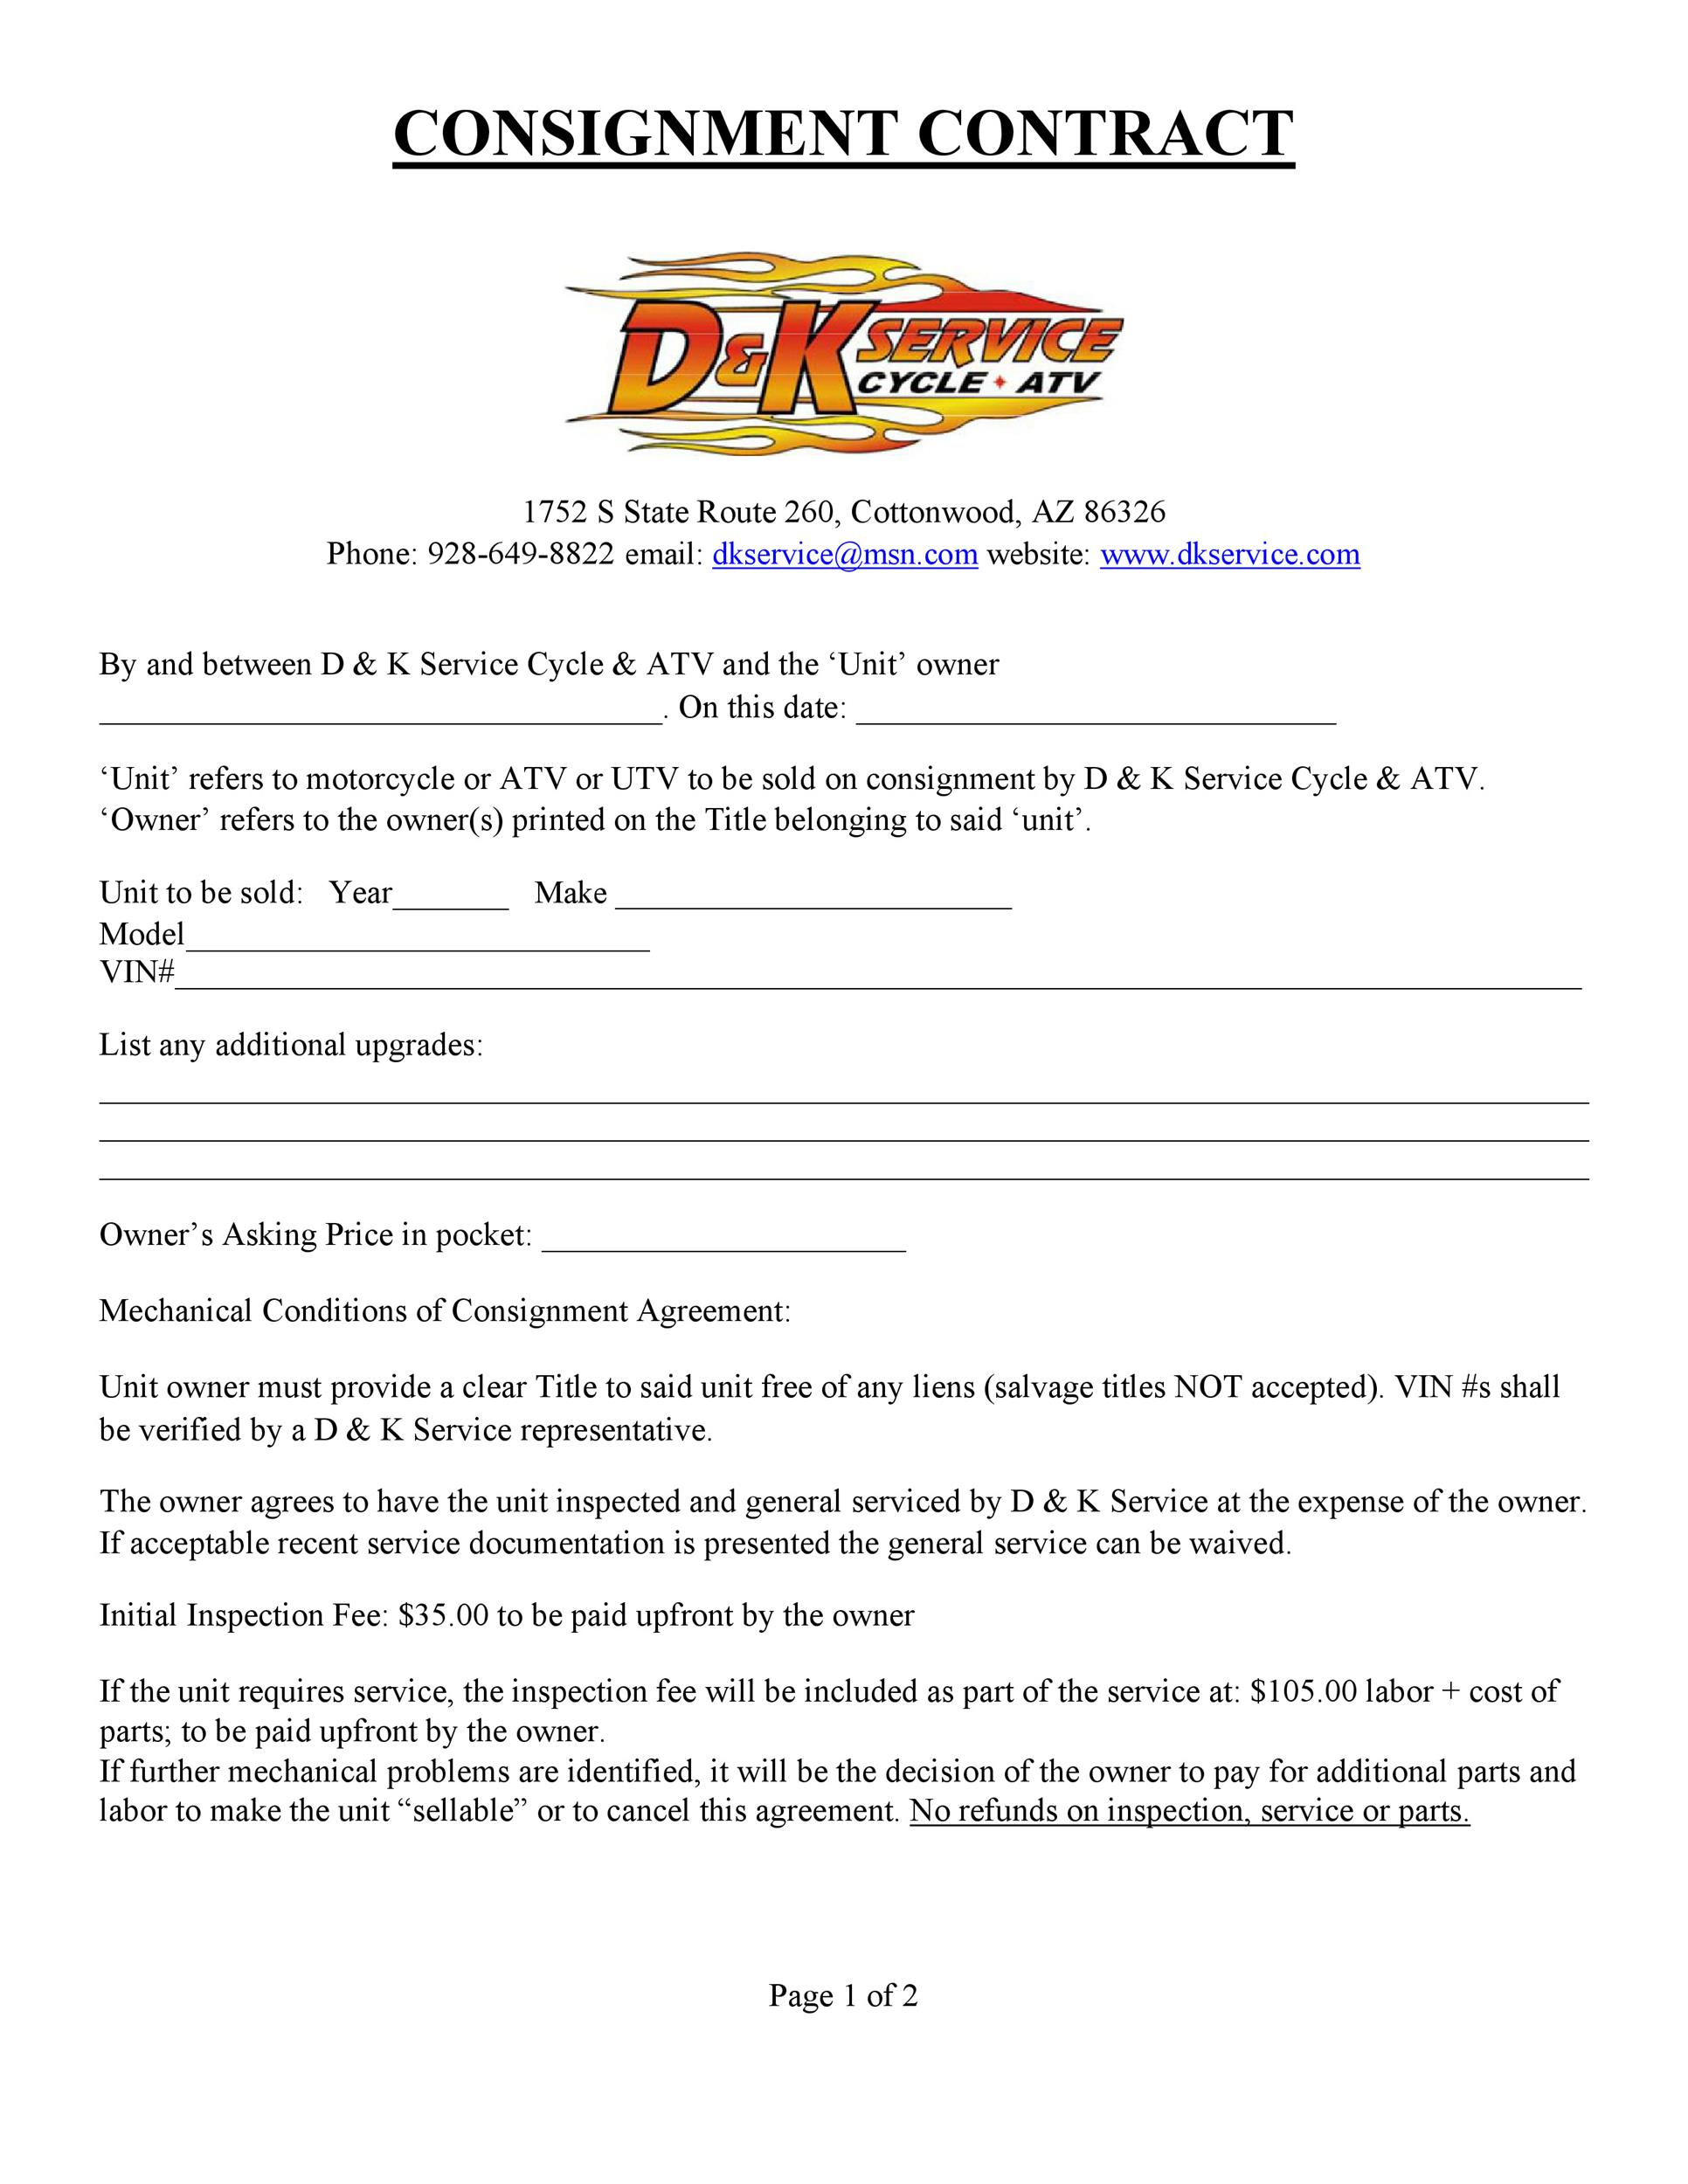 Free Consignment Agreement Template 33